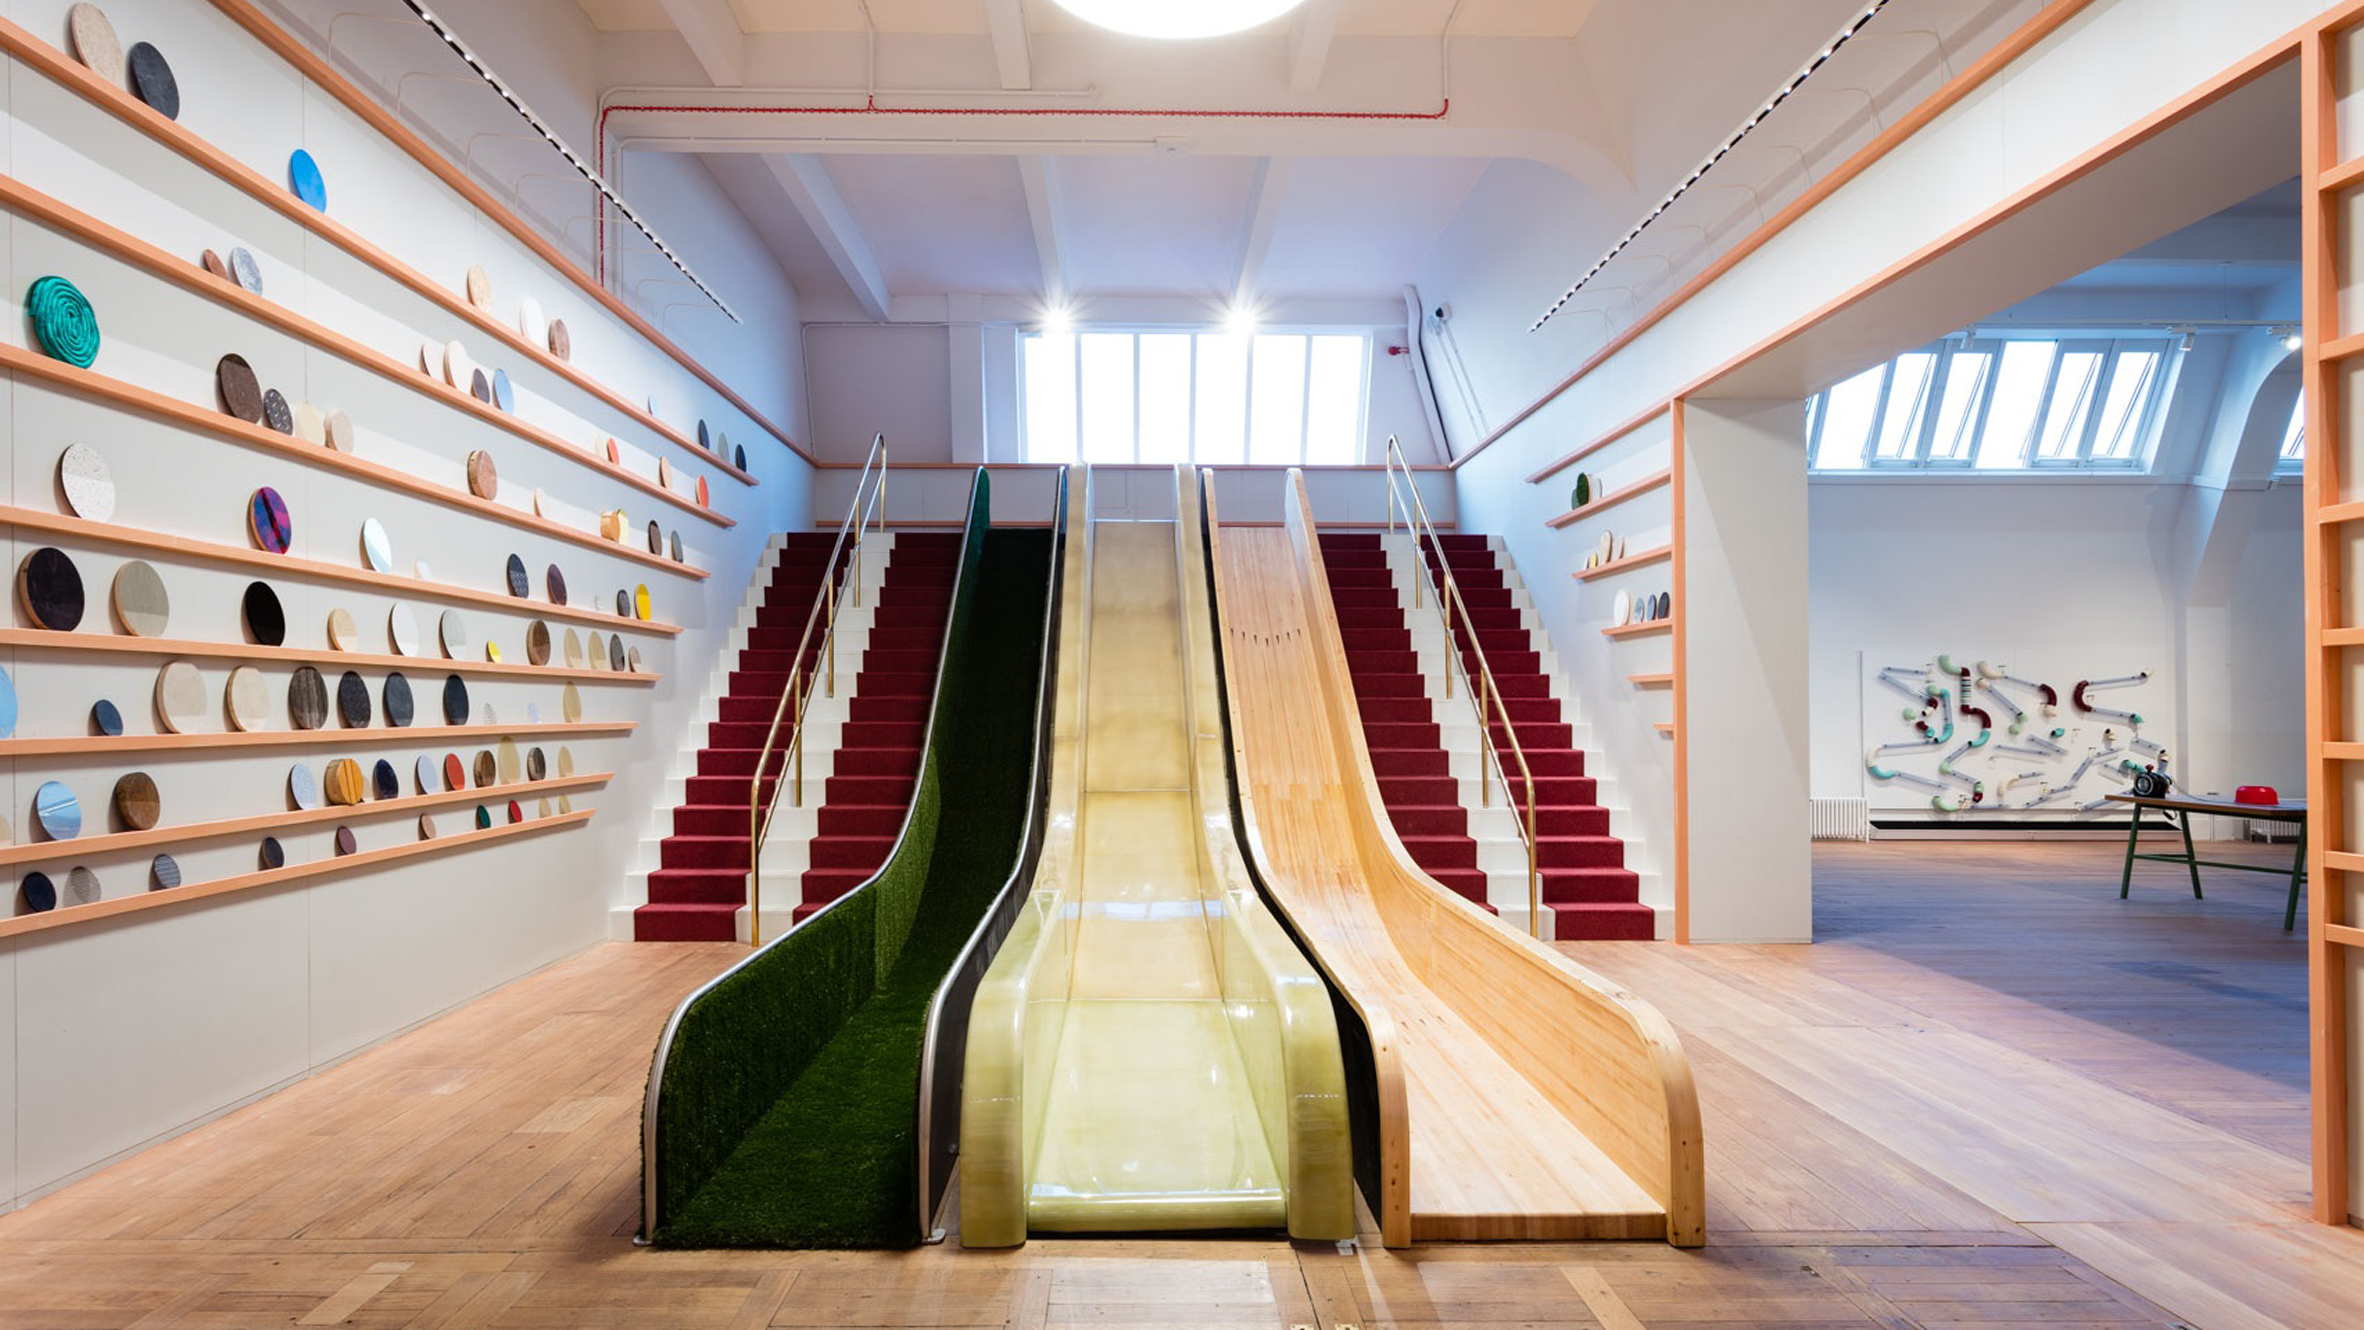 wonderlab-exhibition-interiors-design-science-museum-london-uk_dezeen_hero2